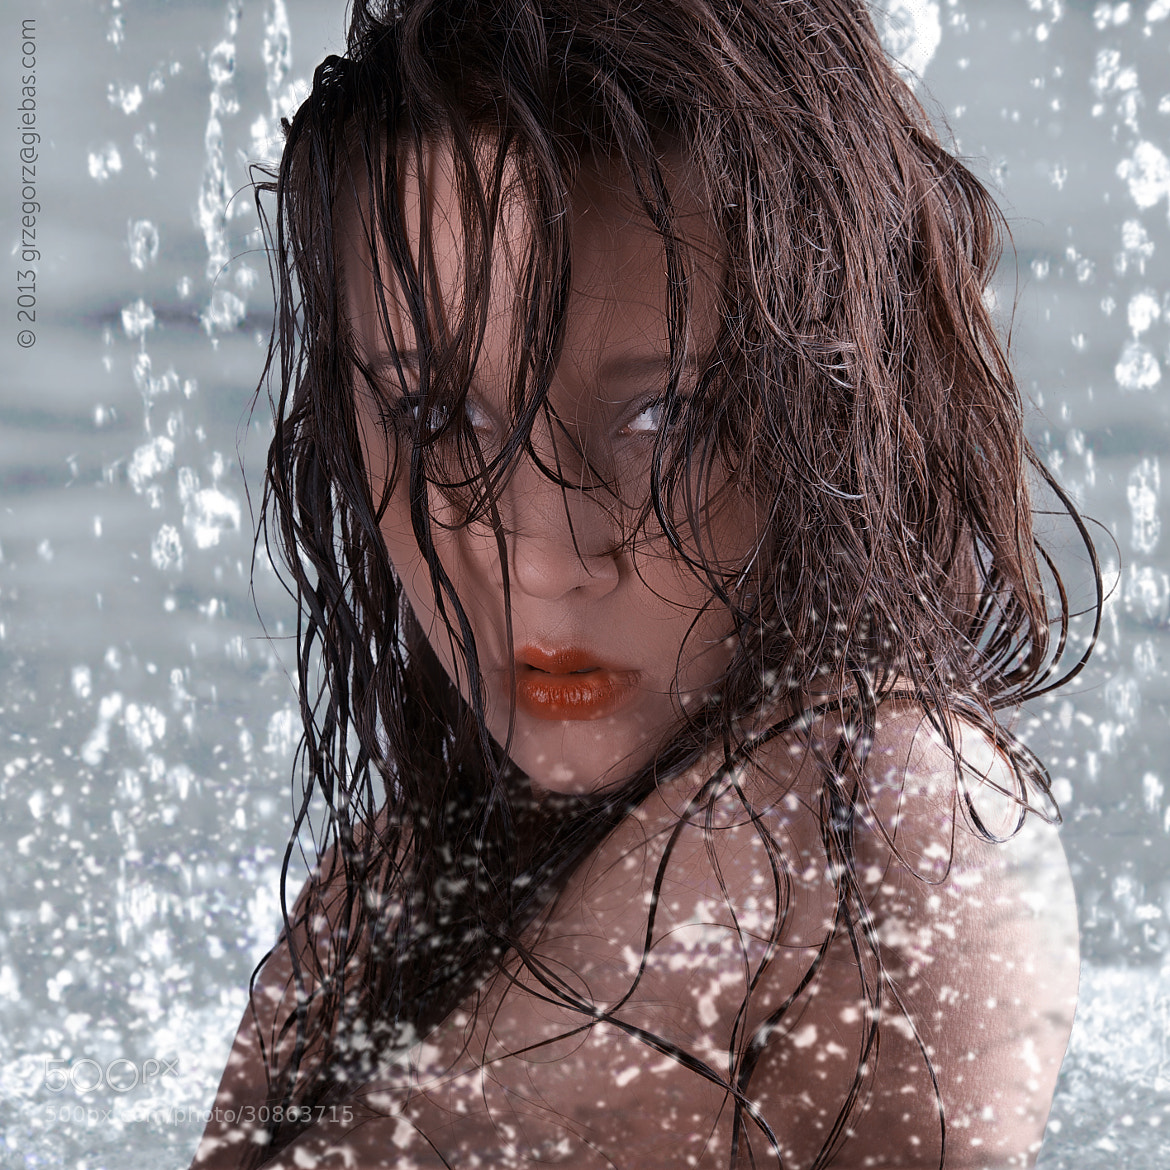 Photograph Woman in wet by Grzegorz Giebas on 500px